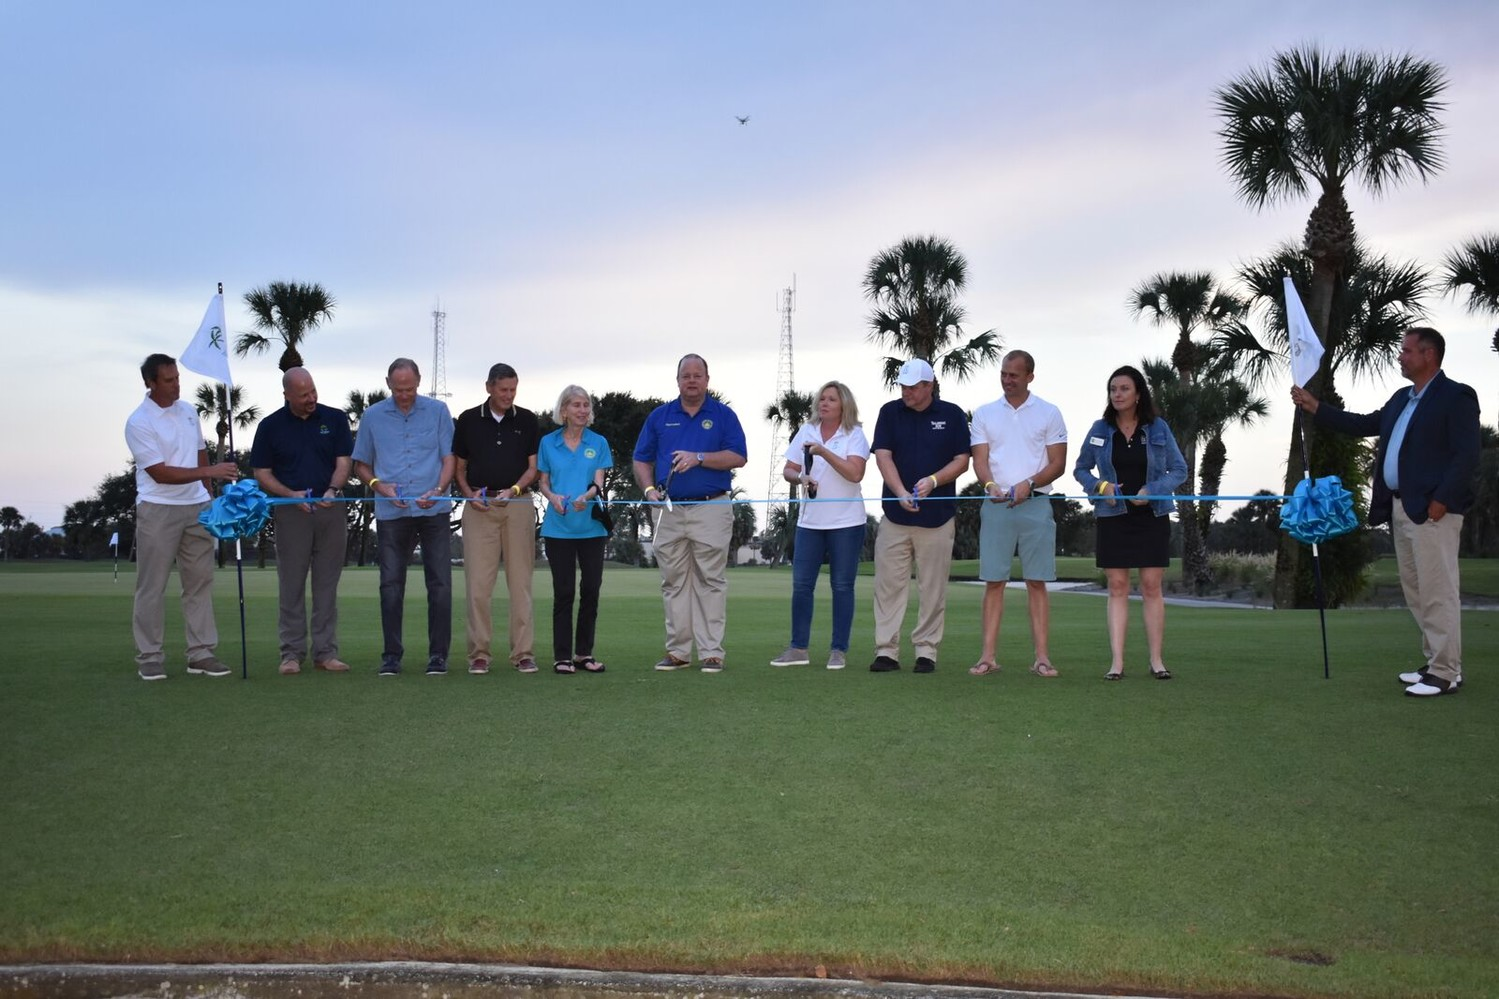 Local officials and Jax beach Golf Club leaders participate in a special ribbon-cutting ceremony on Friday, Nov. 9 to officially reopen the club after a $2 million renovation project.